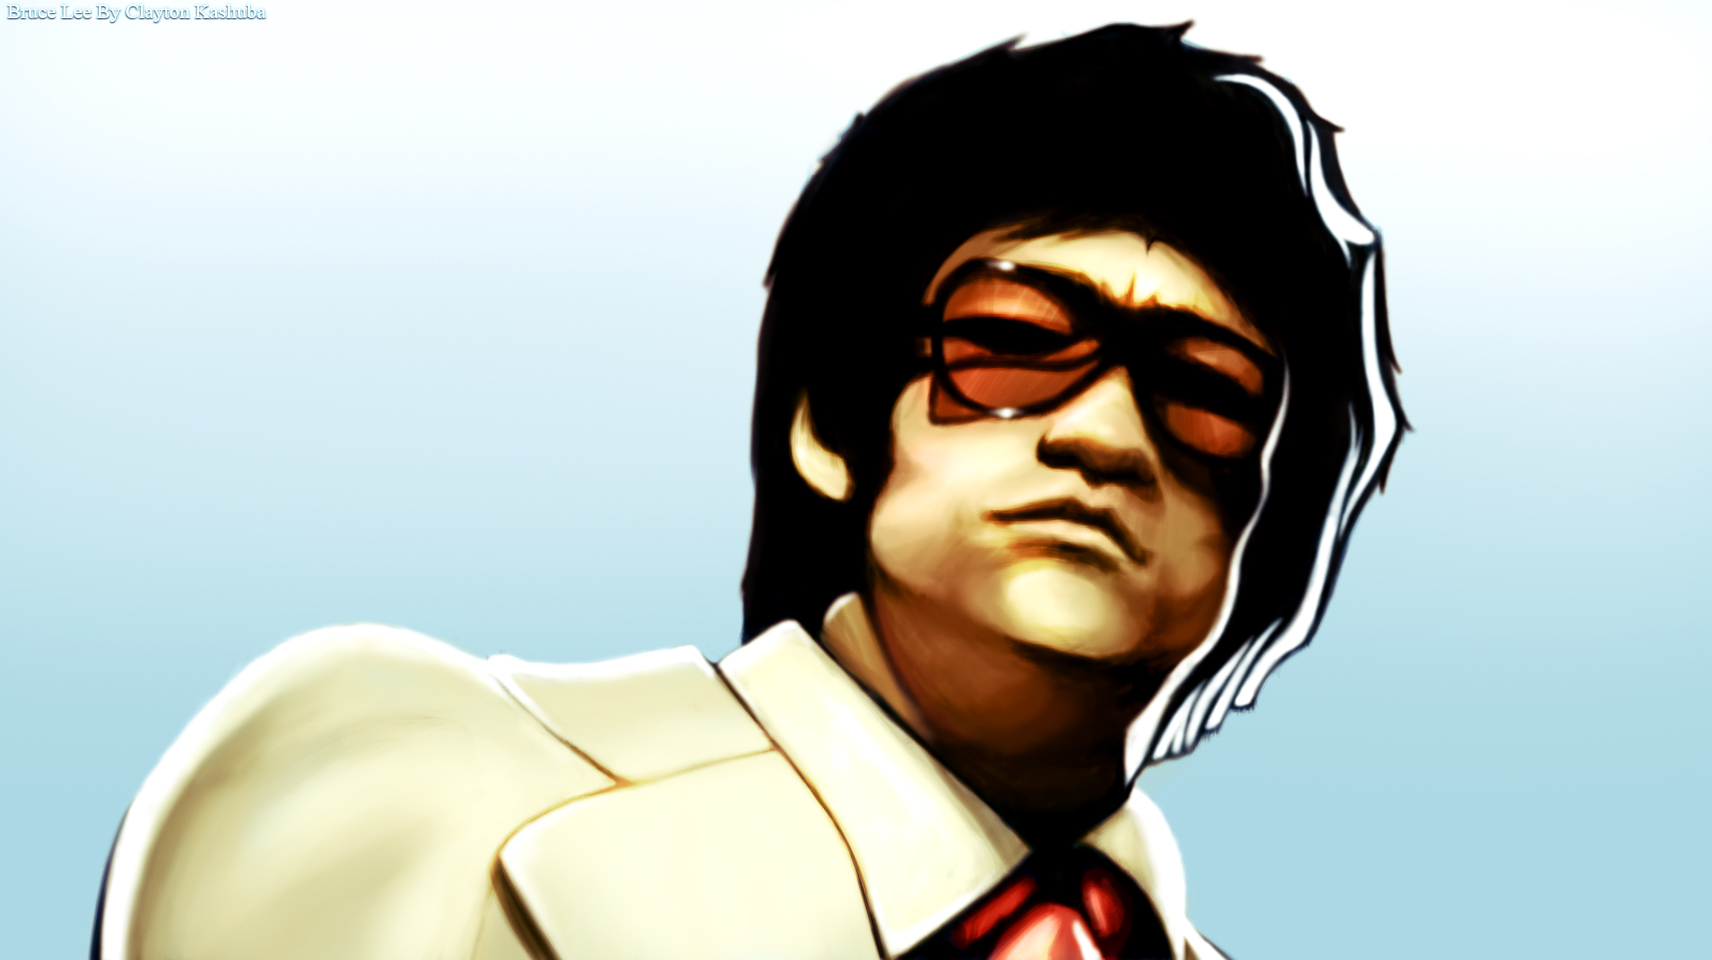 Bruce Lee Wallpapers HD A10